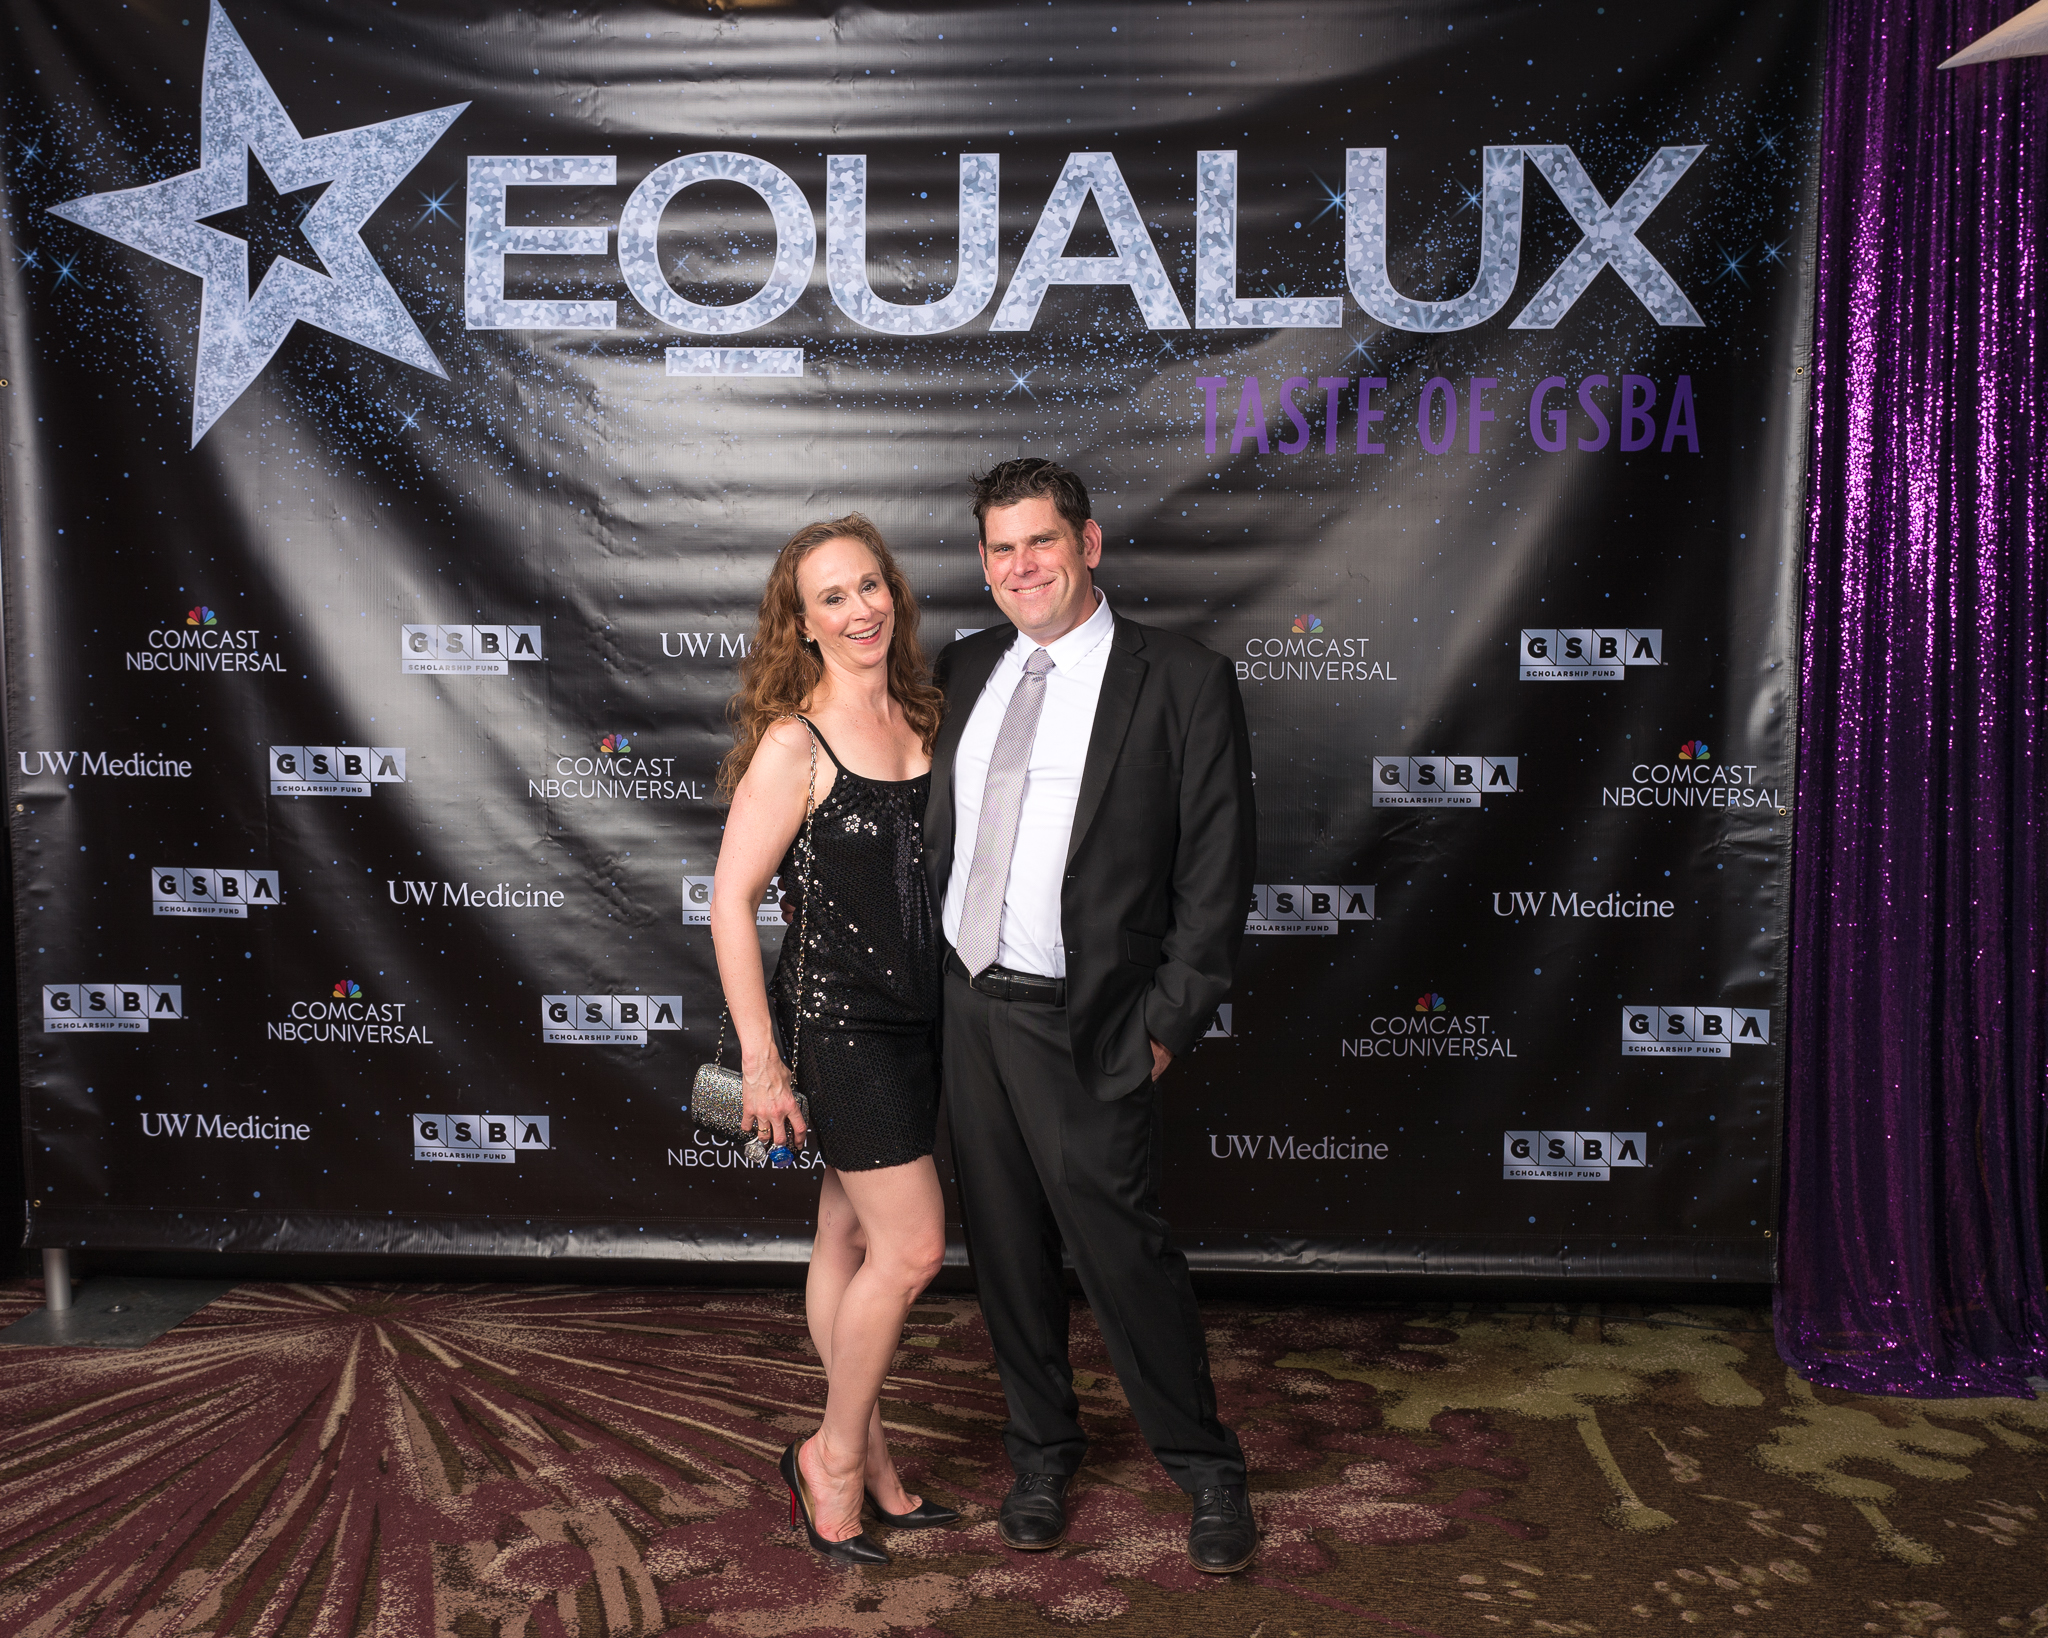 111718_GSBA EQUALUX at The Westin Seattle (Credit- Nate Gowdy)-160.jpg